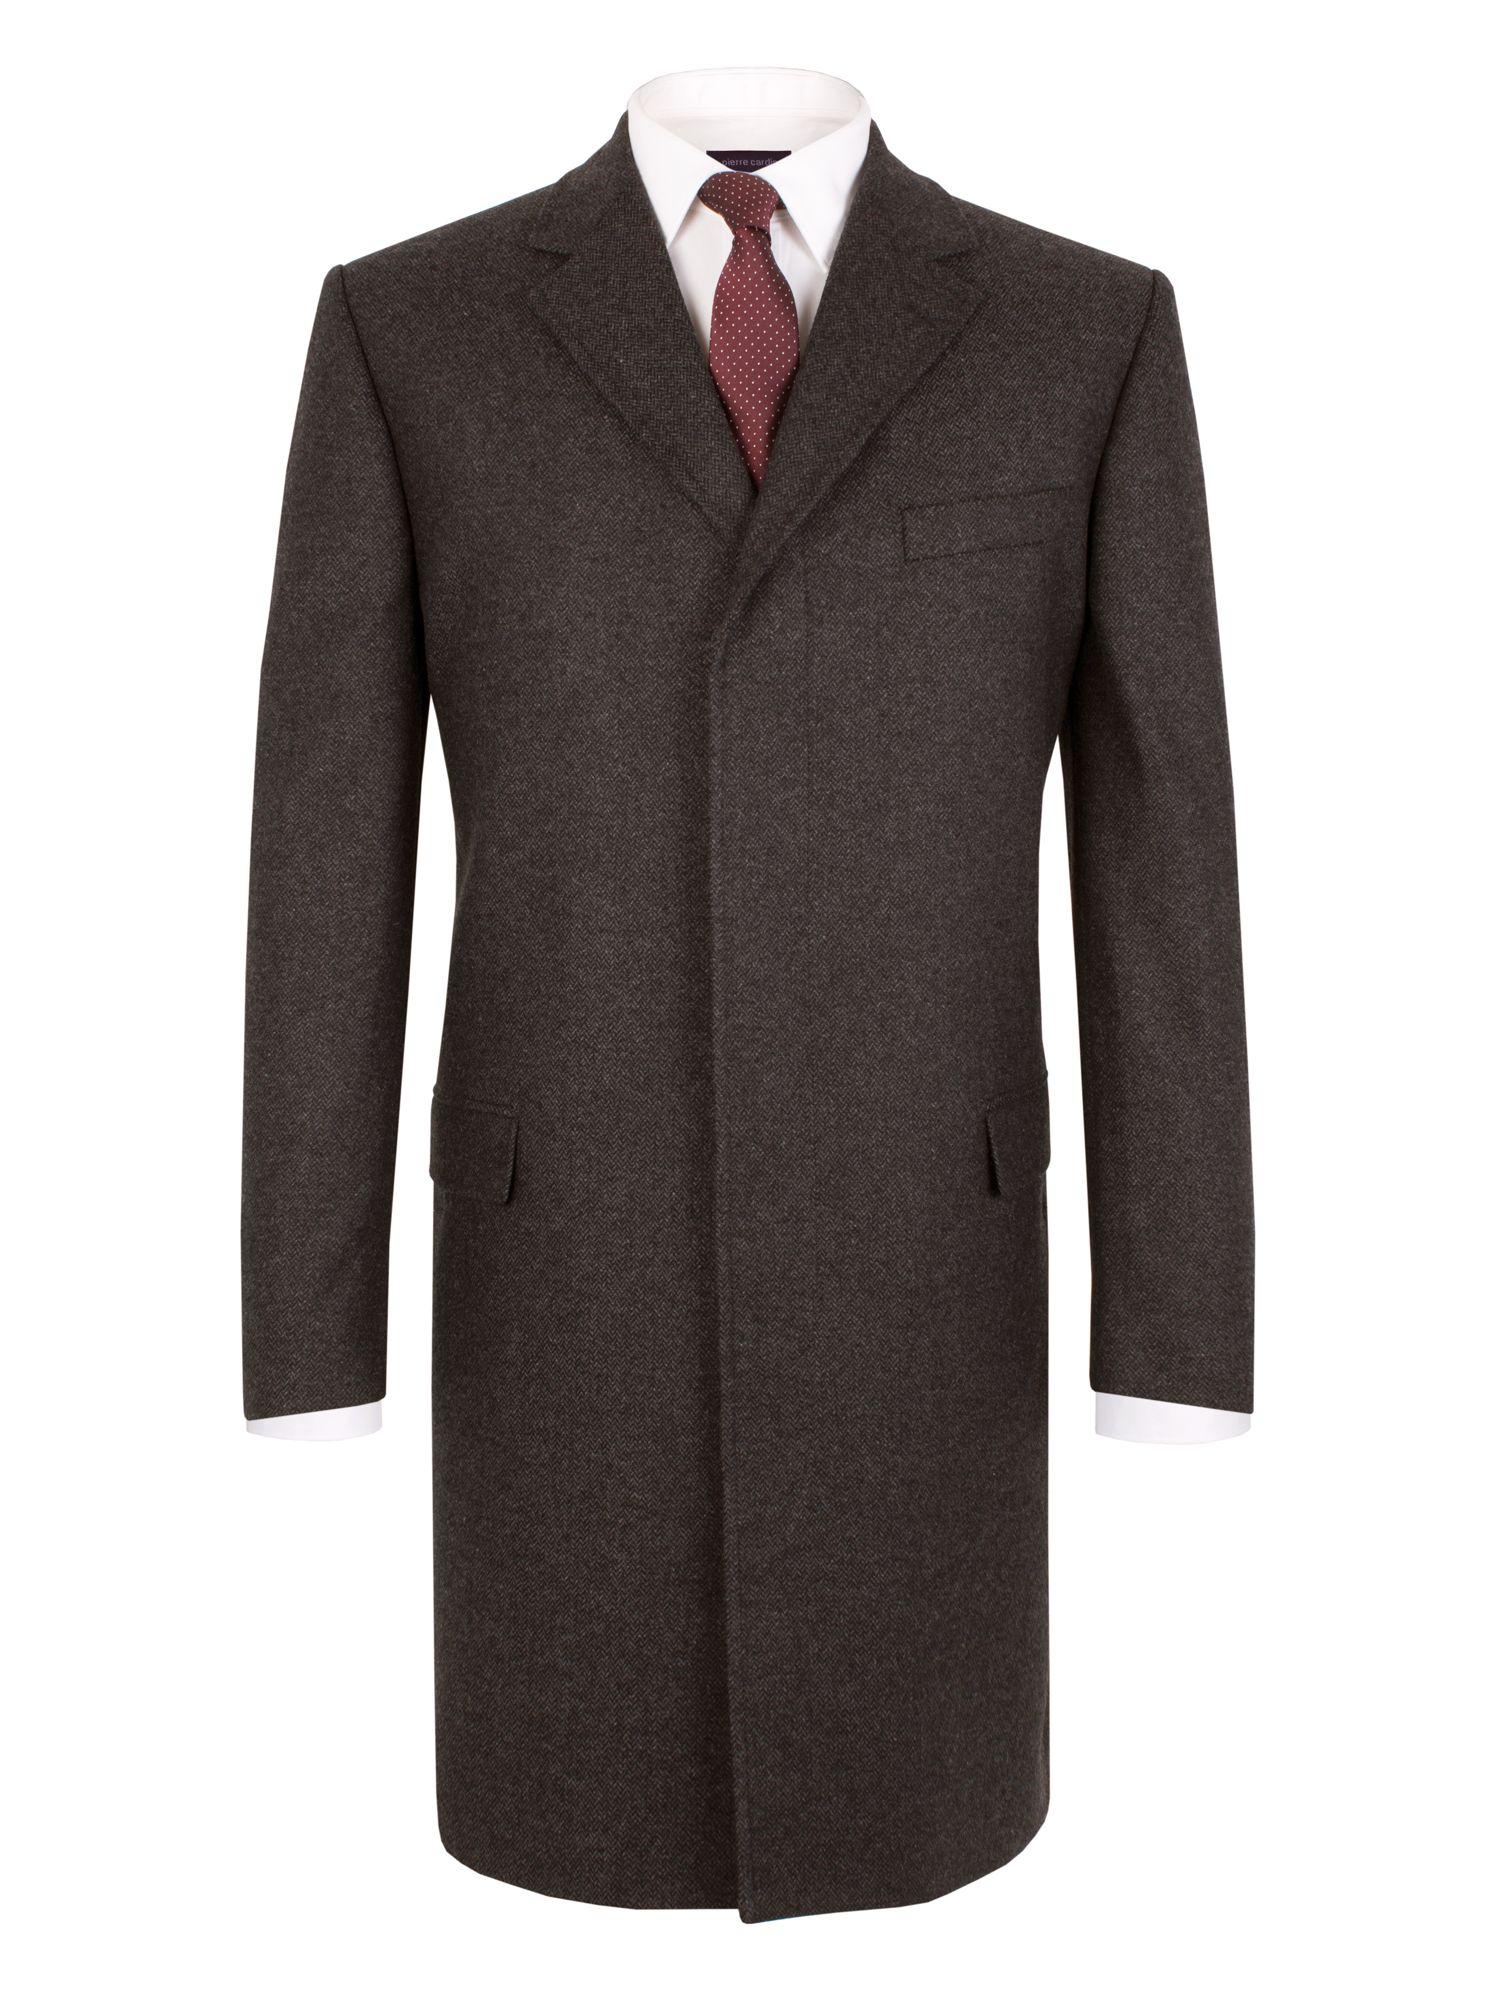 Mens Pierre Cardin Herringbone Formal Button Overcoat $107.50 AT vintagedancer.com